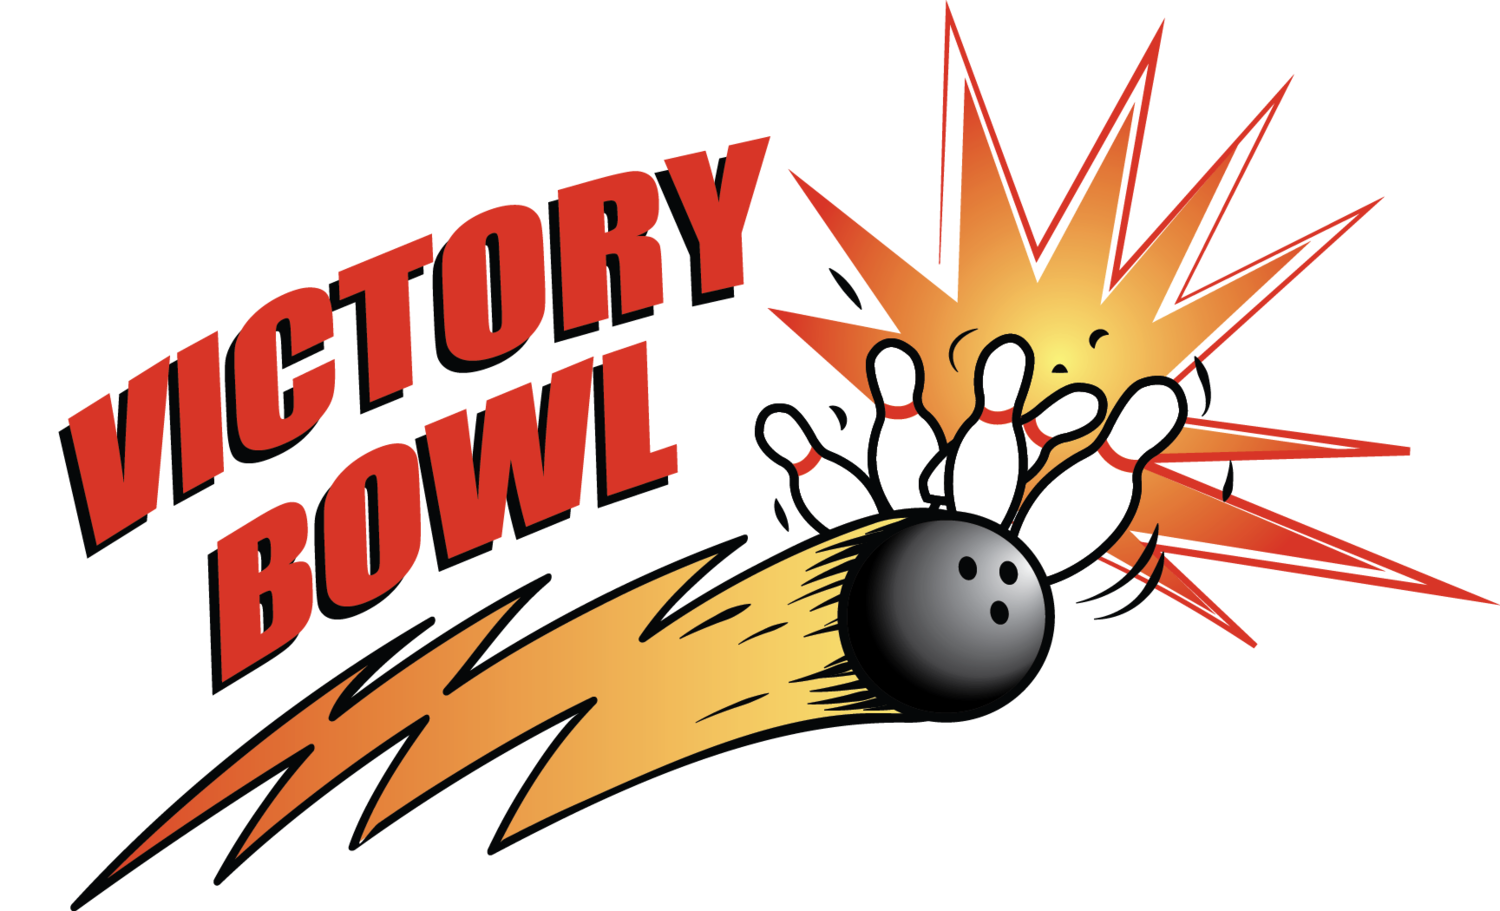 Floor clipart bowling alley. Victory bowl home